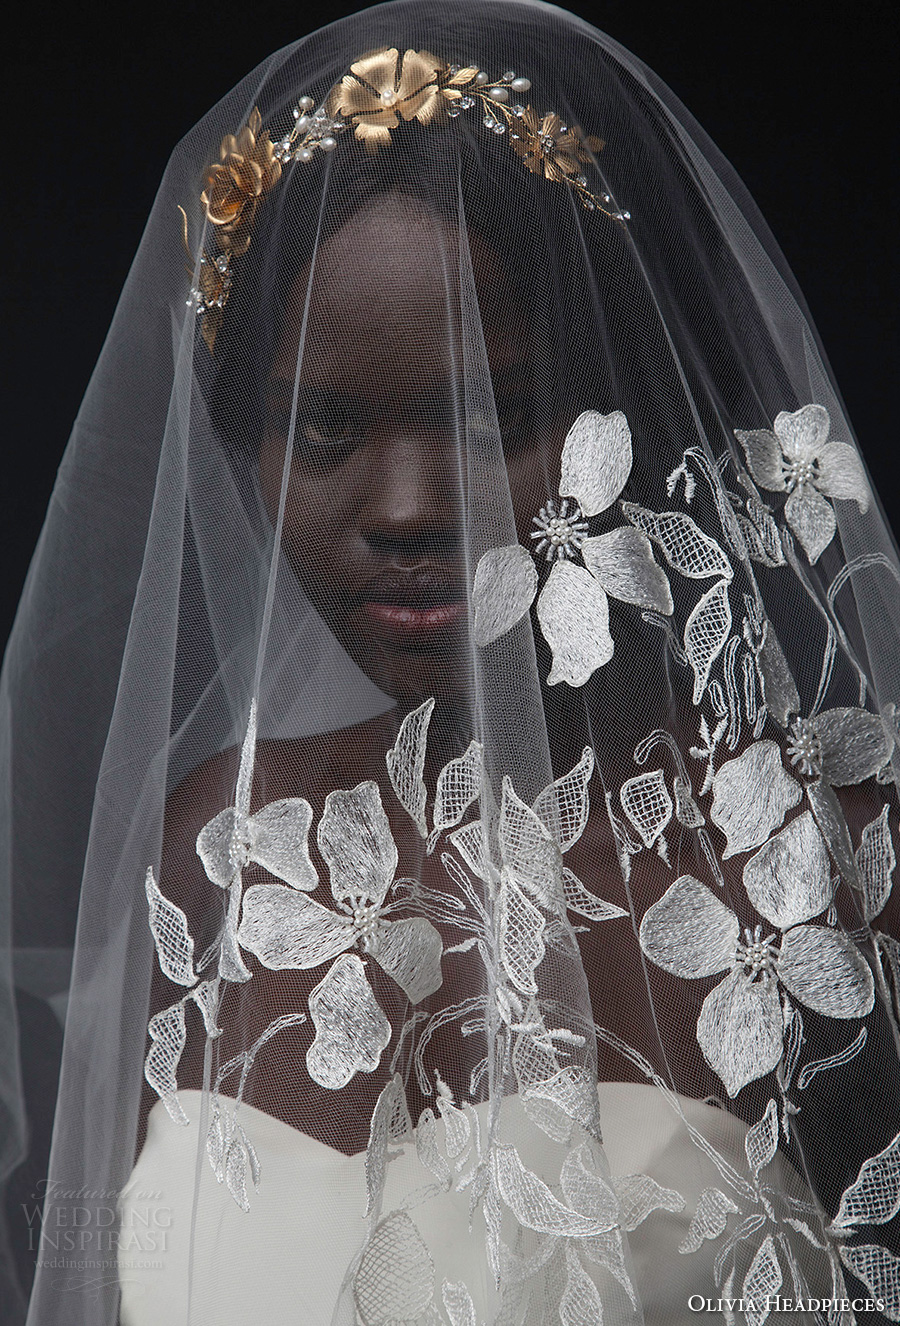 olivia headpieces fall 2016 veils floral half embroidered chapel veil (abbott) zv